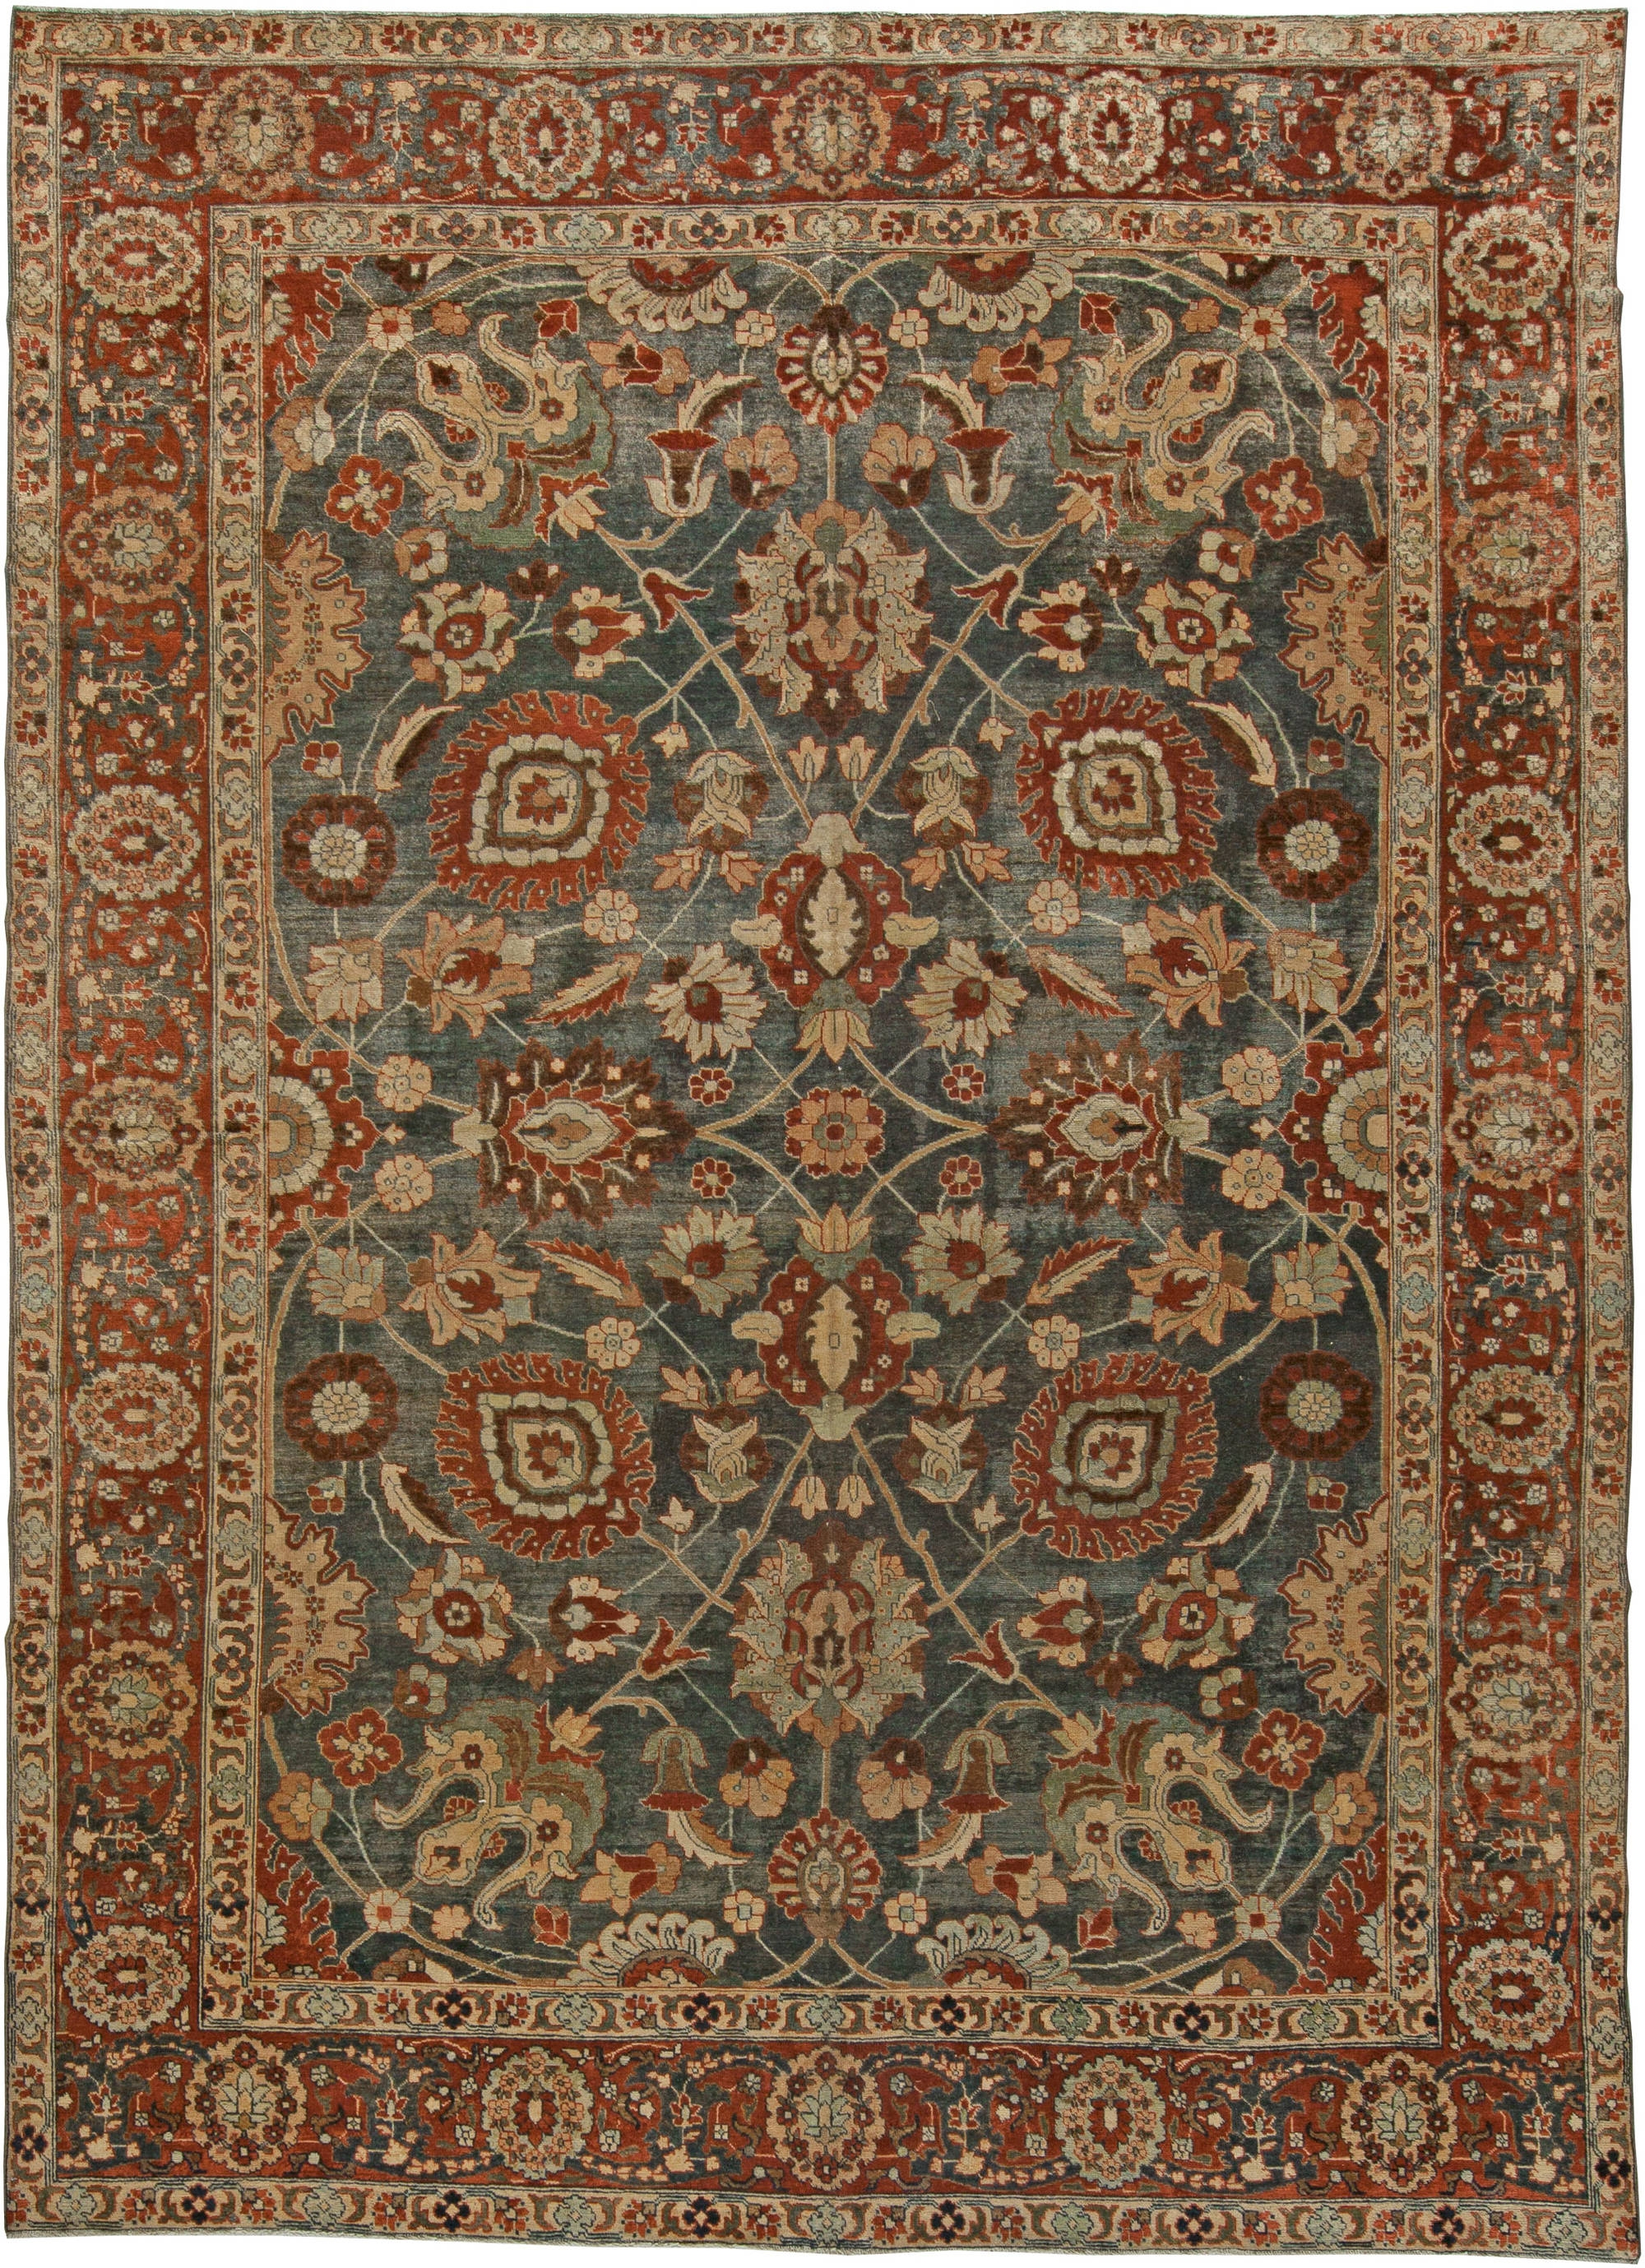 Antique Persian Rugs And Antique Oriental Rugs Regarding Oriental Persian Rugs (Image 3 of 15)